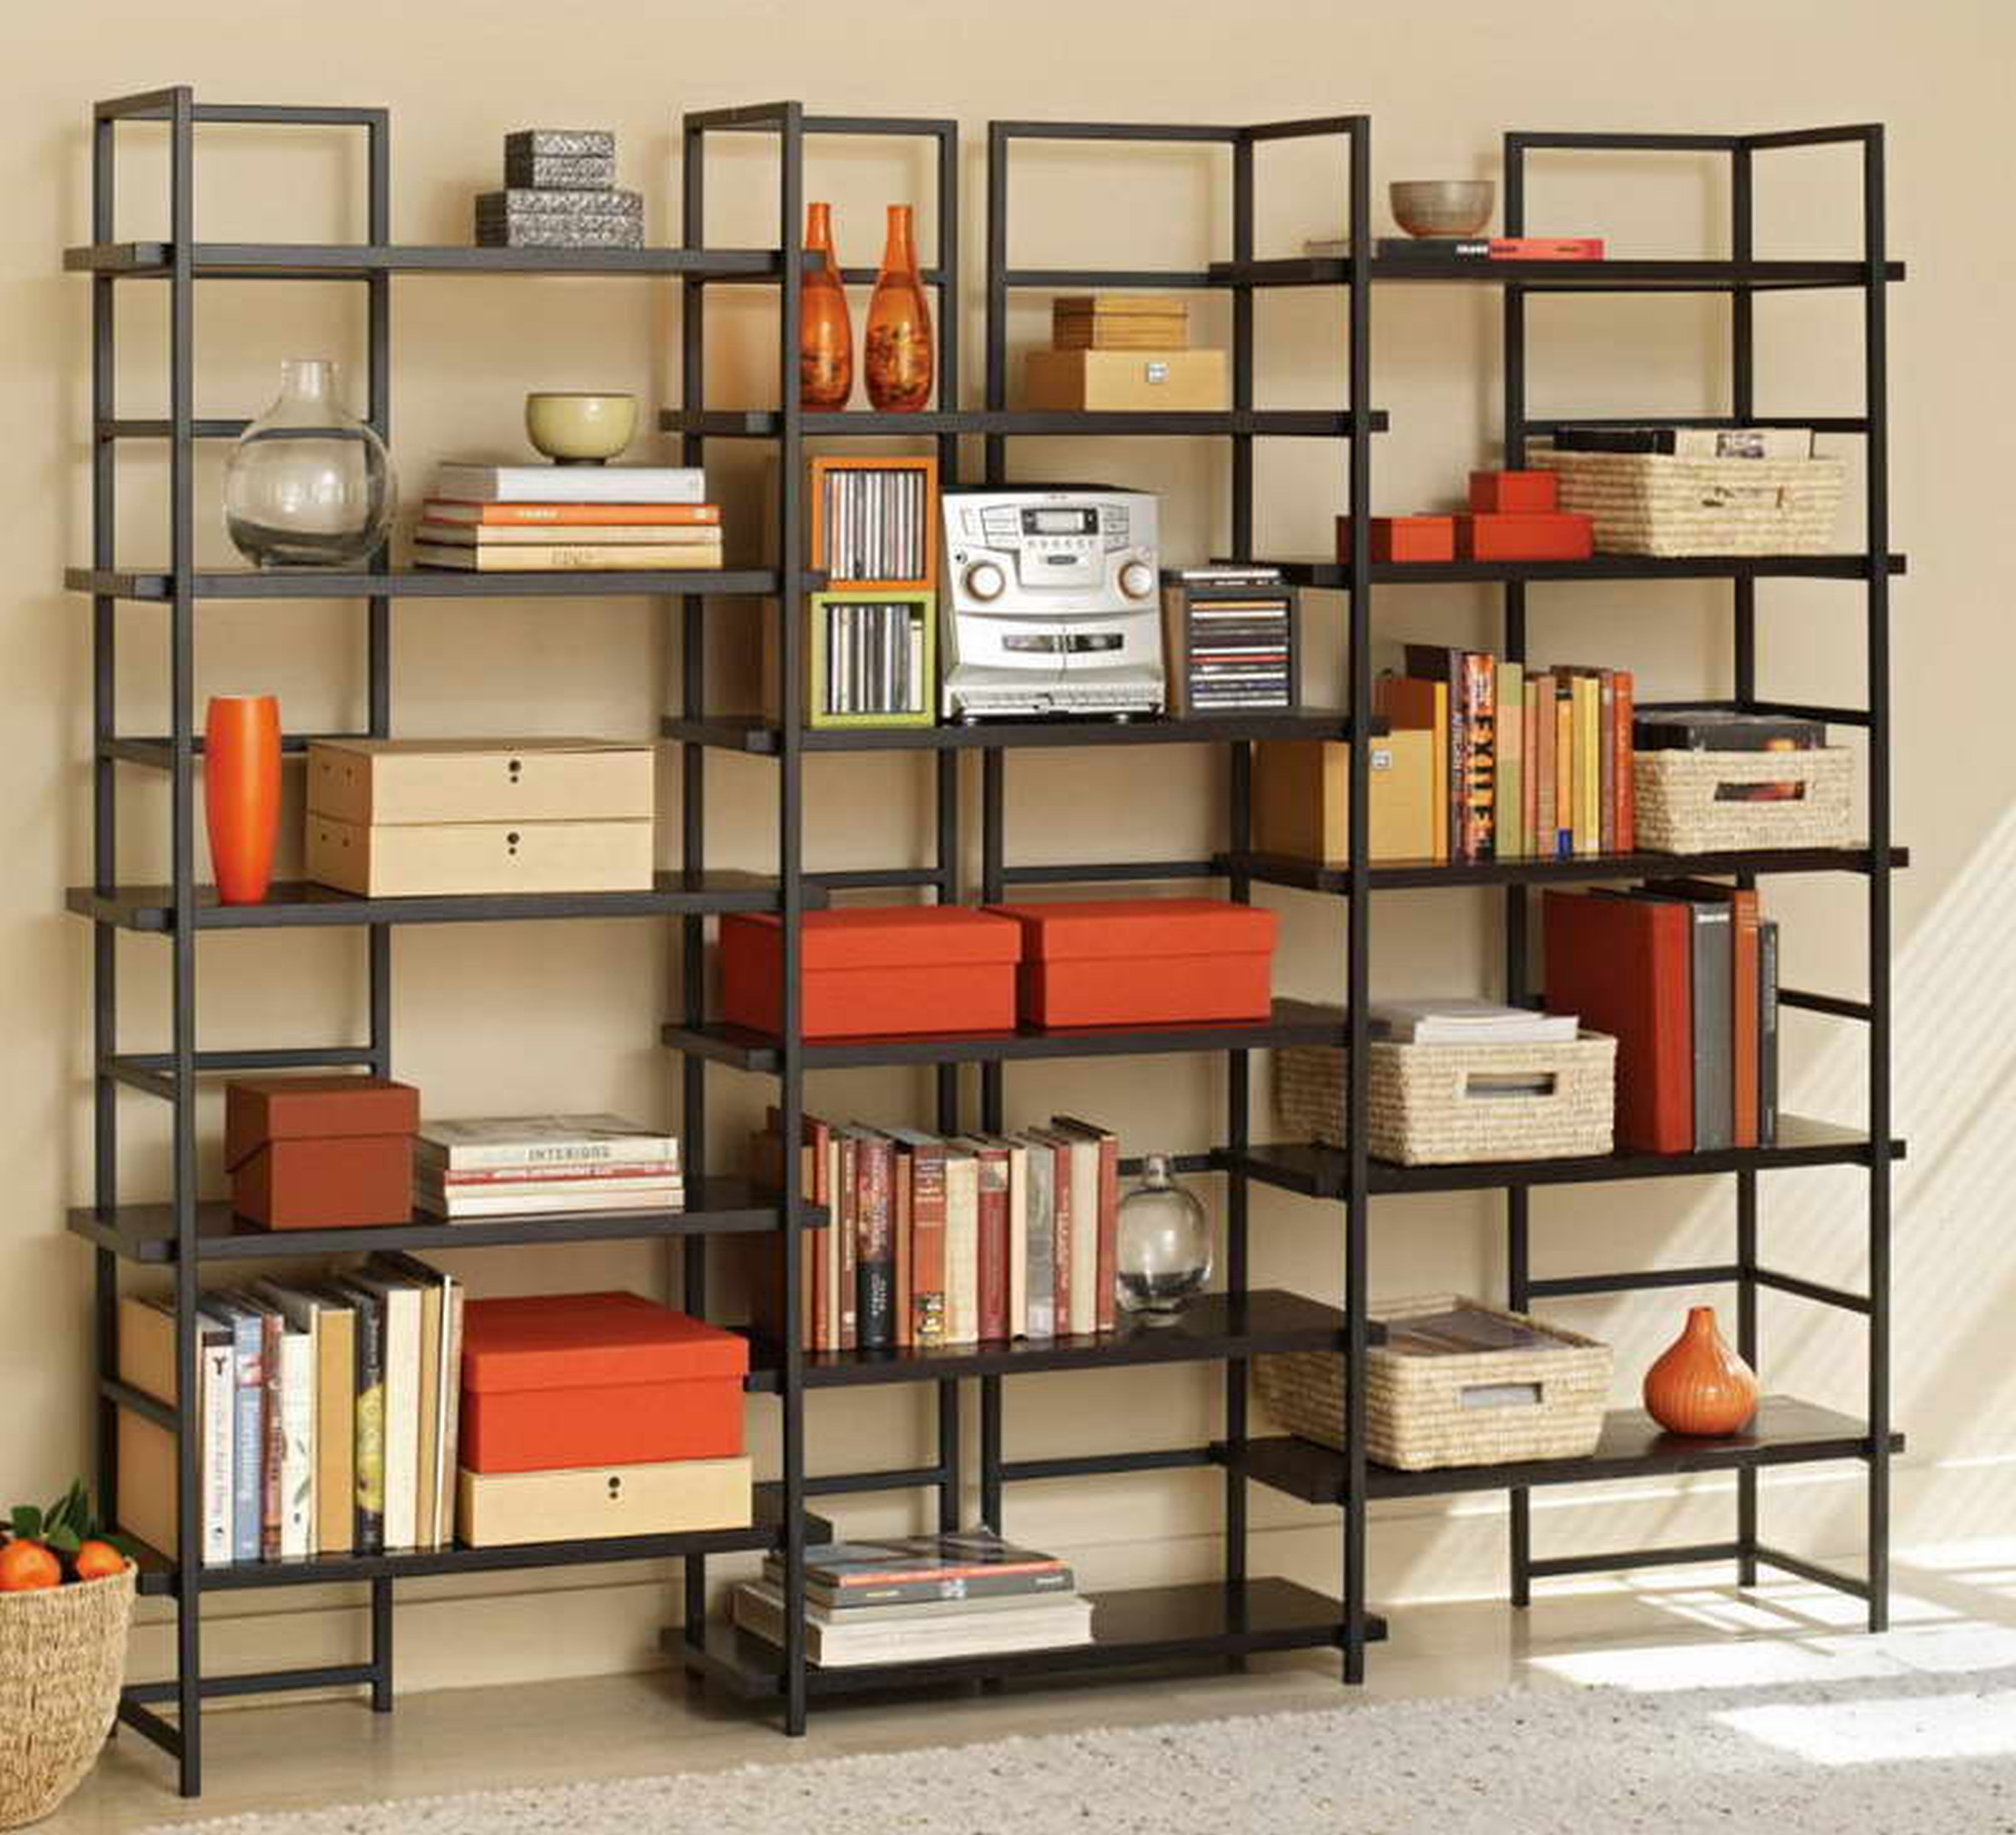 shelves unique dividers room dramatic ikea bookshelf book bookcase wall divider startling shelving gibnetinfo wallpaper home